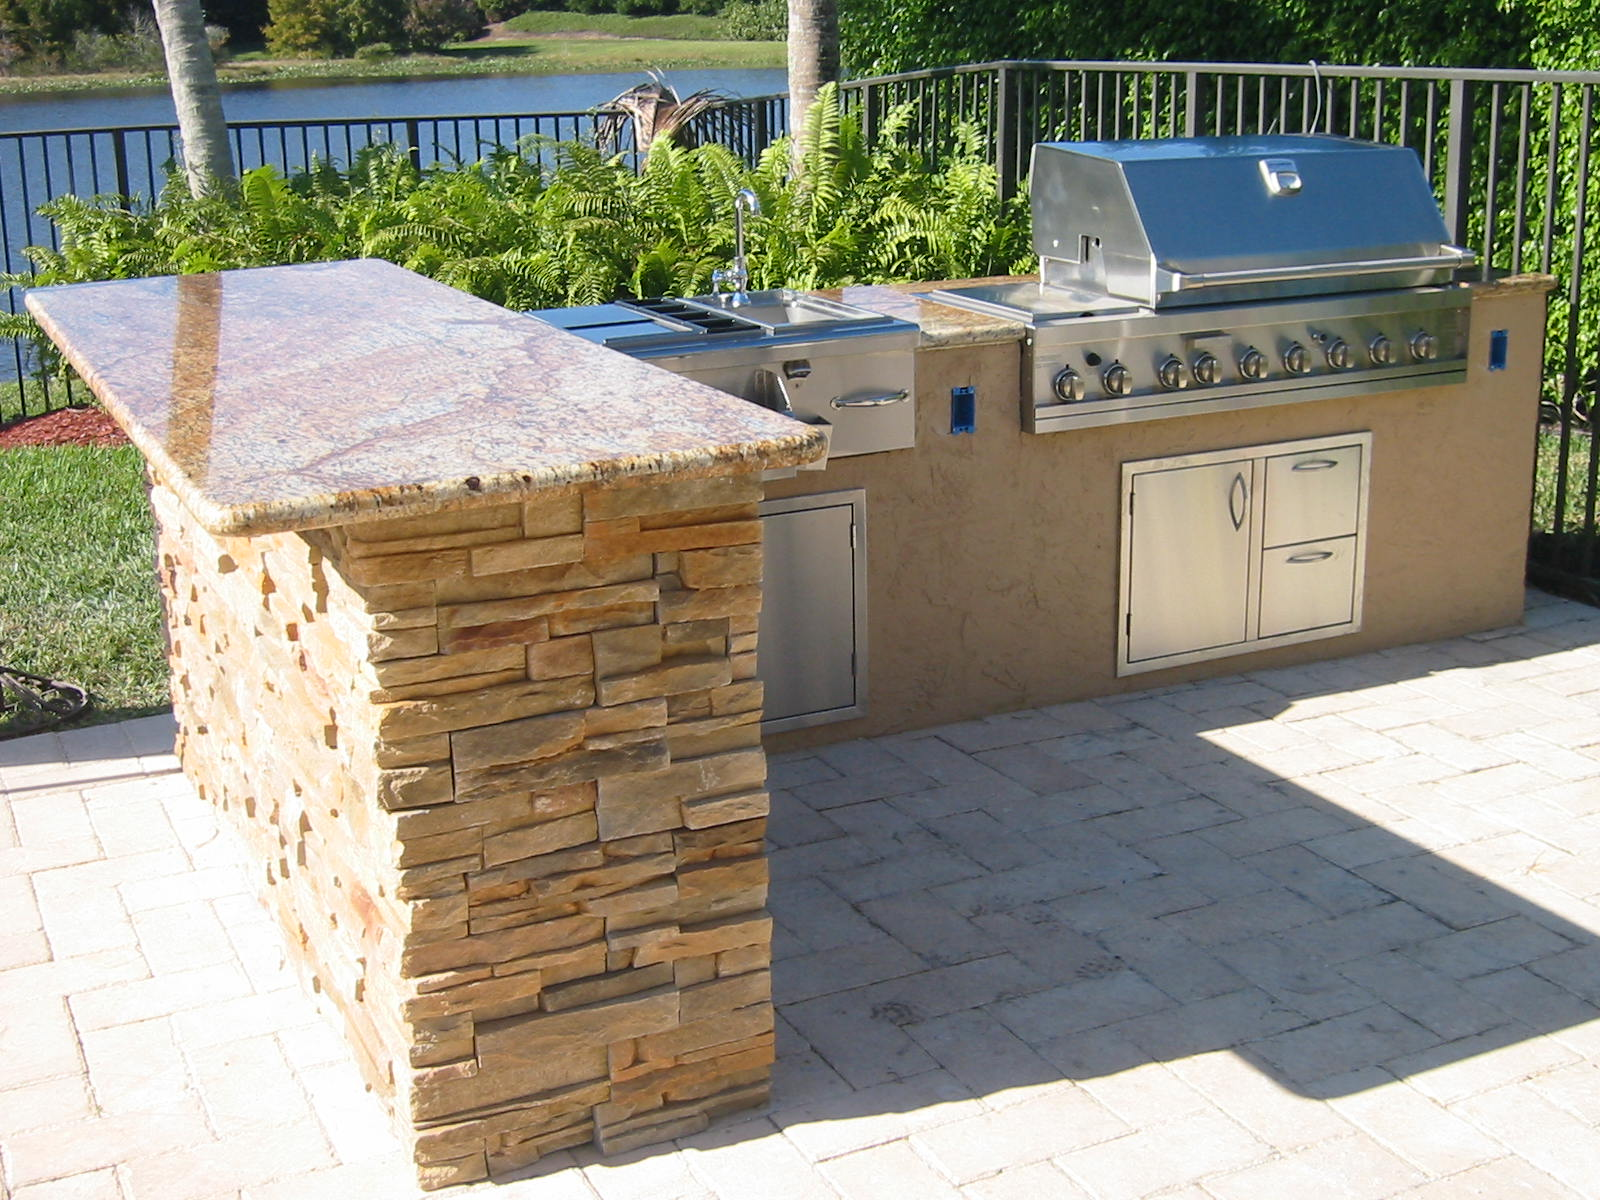 Outdoor Kitchens Boerne TX | Outdoor Kitchen Designs Boerne Texas on covered terrace ideas, covered pergola ideas, covered hot tub ideas, covered outdoor fireplaces, covered outdoor chairs, covered patio designs, covered outdoor living rooms, covered deck with kitchen, covered backyard ideas, covered grill ideas, covered walkway ideas, rustic outdoor ideas, covered bbq ideas, covered balcony ideas, covered outdoor kitchens and patios, covered privacy fence ideas, cool outdoor bar ideas, covered outdoor cooking, covered fireplace ideas, covered outdoor architecture,